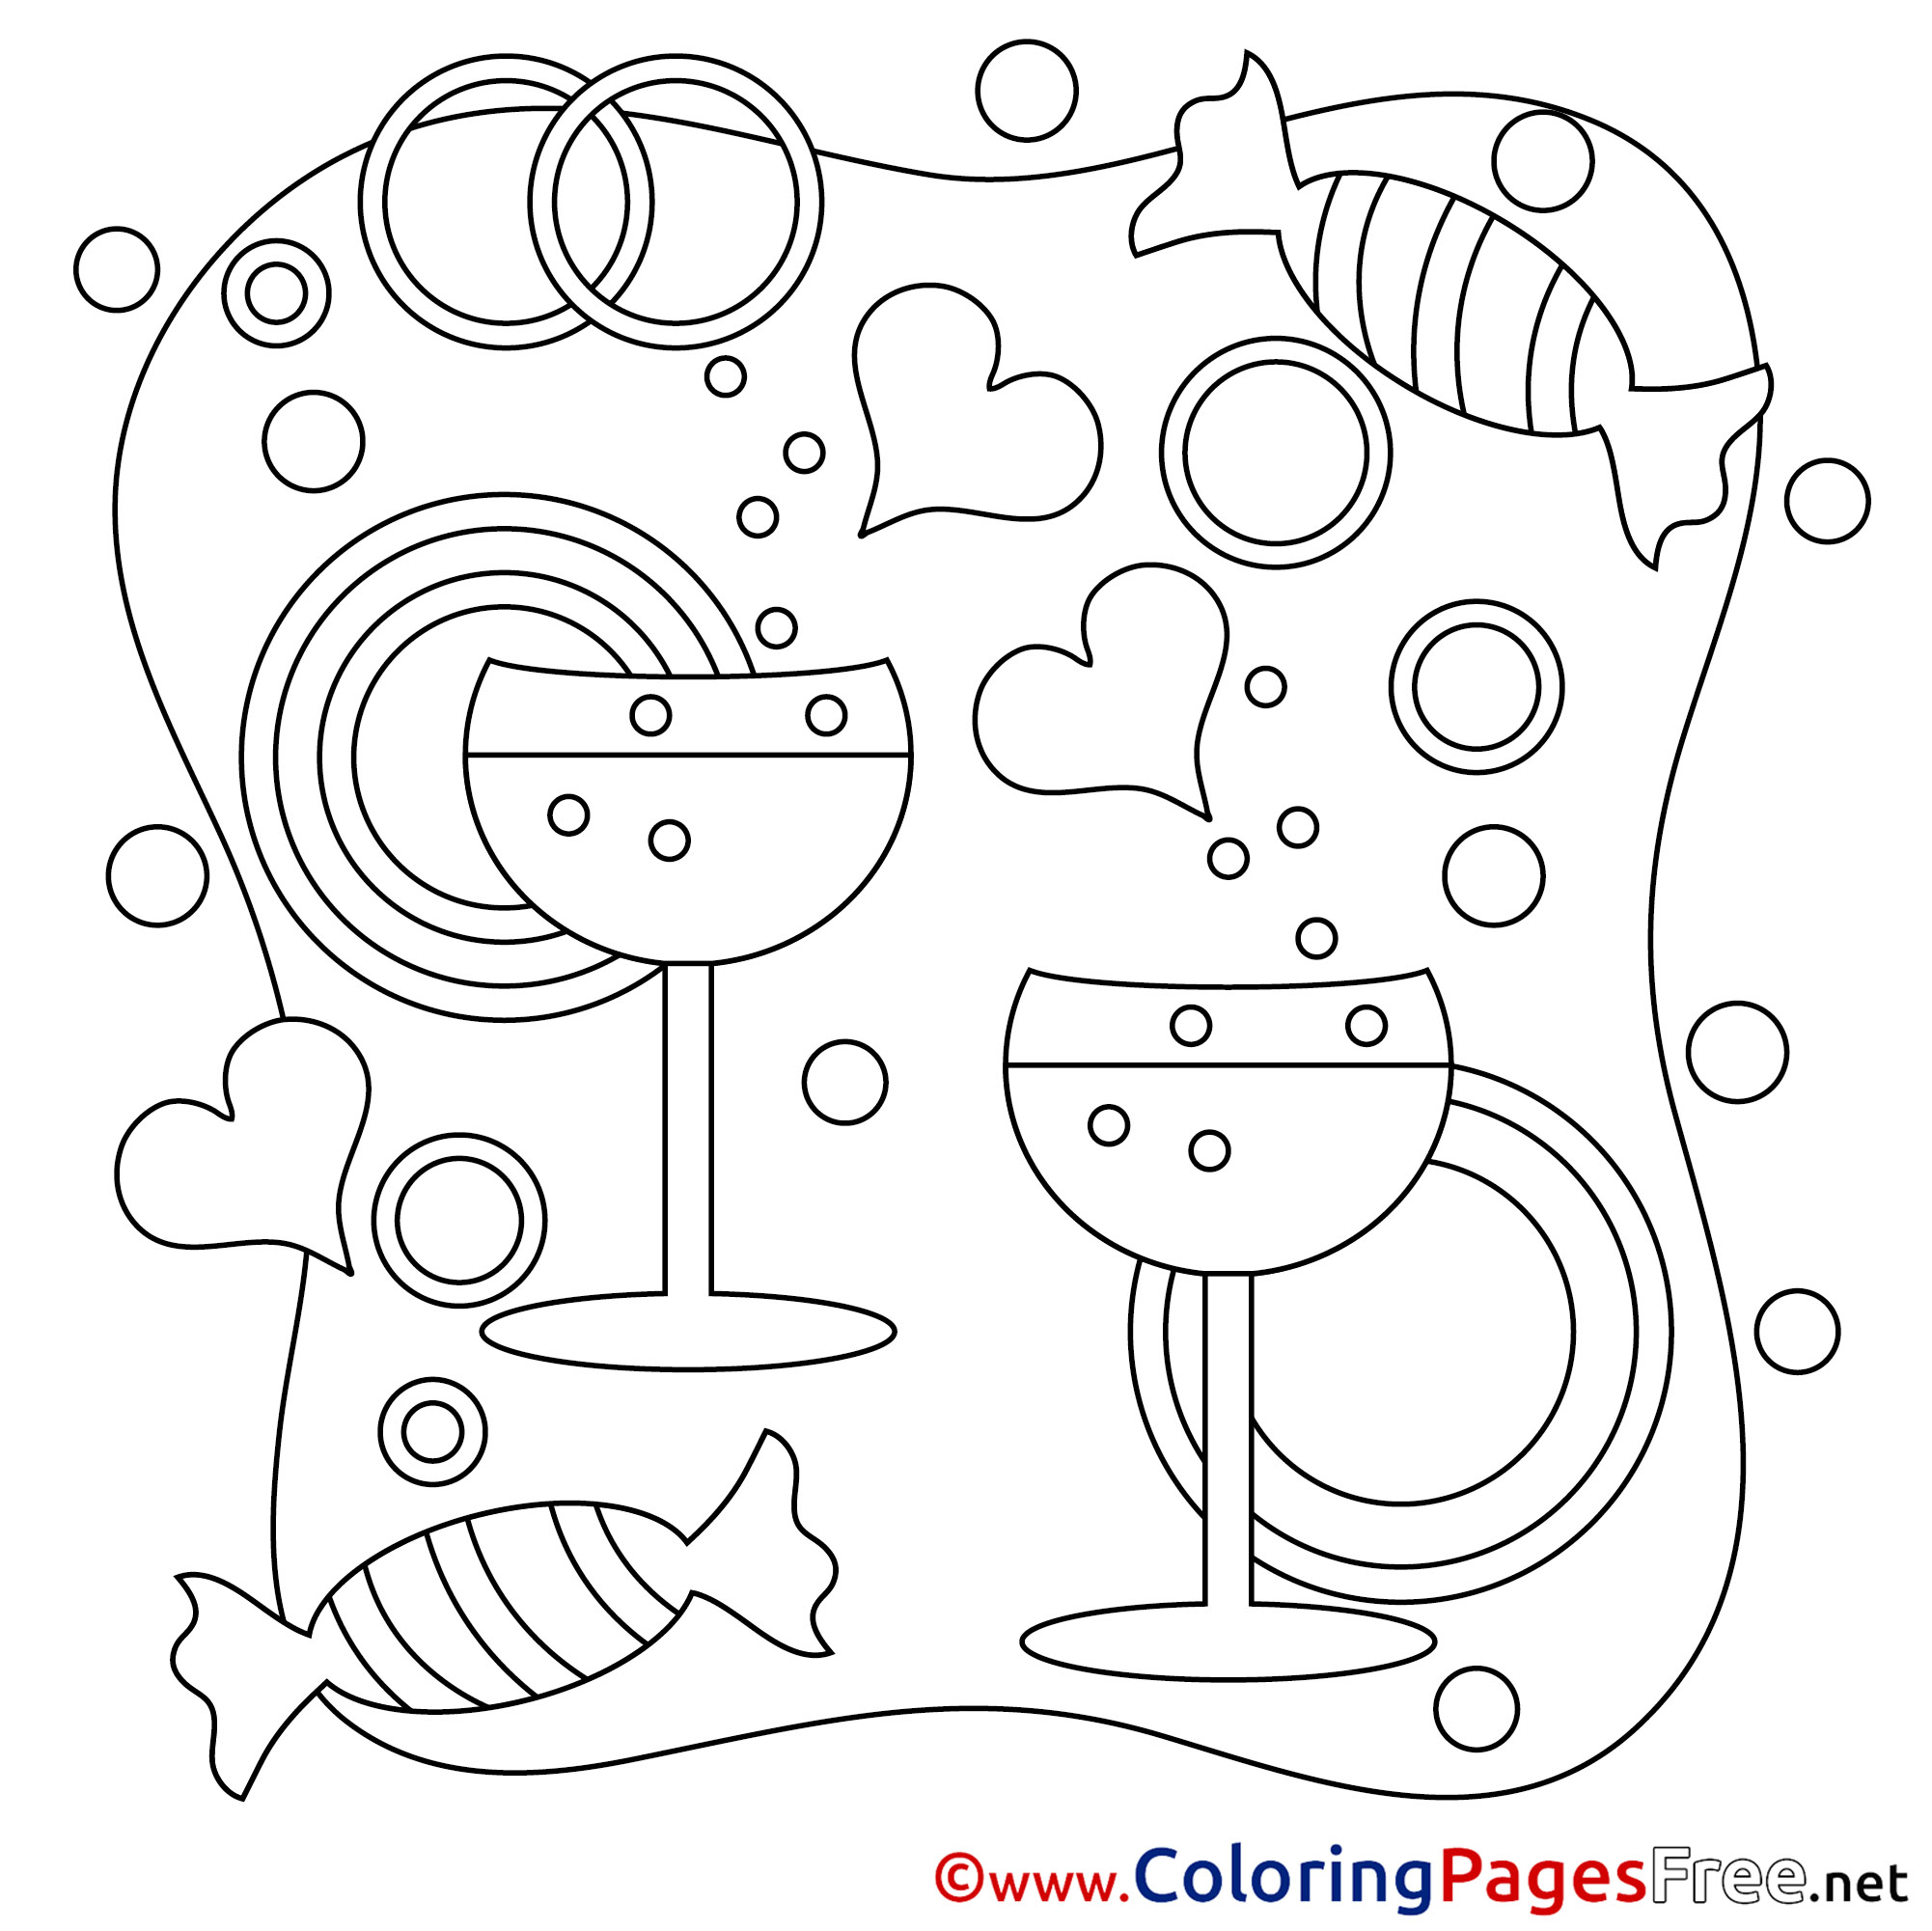 Valentines Day Coloring Pages - GetColoringPages.com   2001x2002